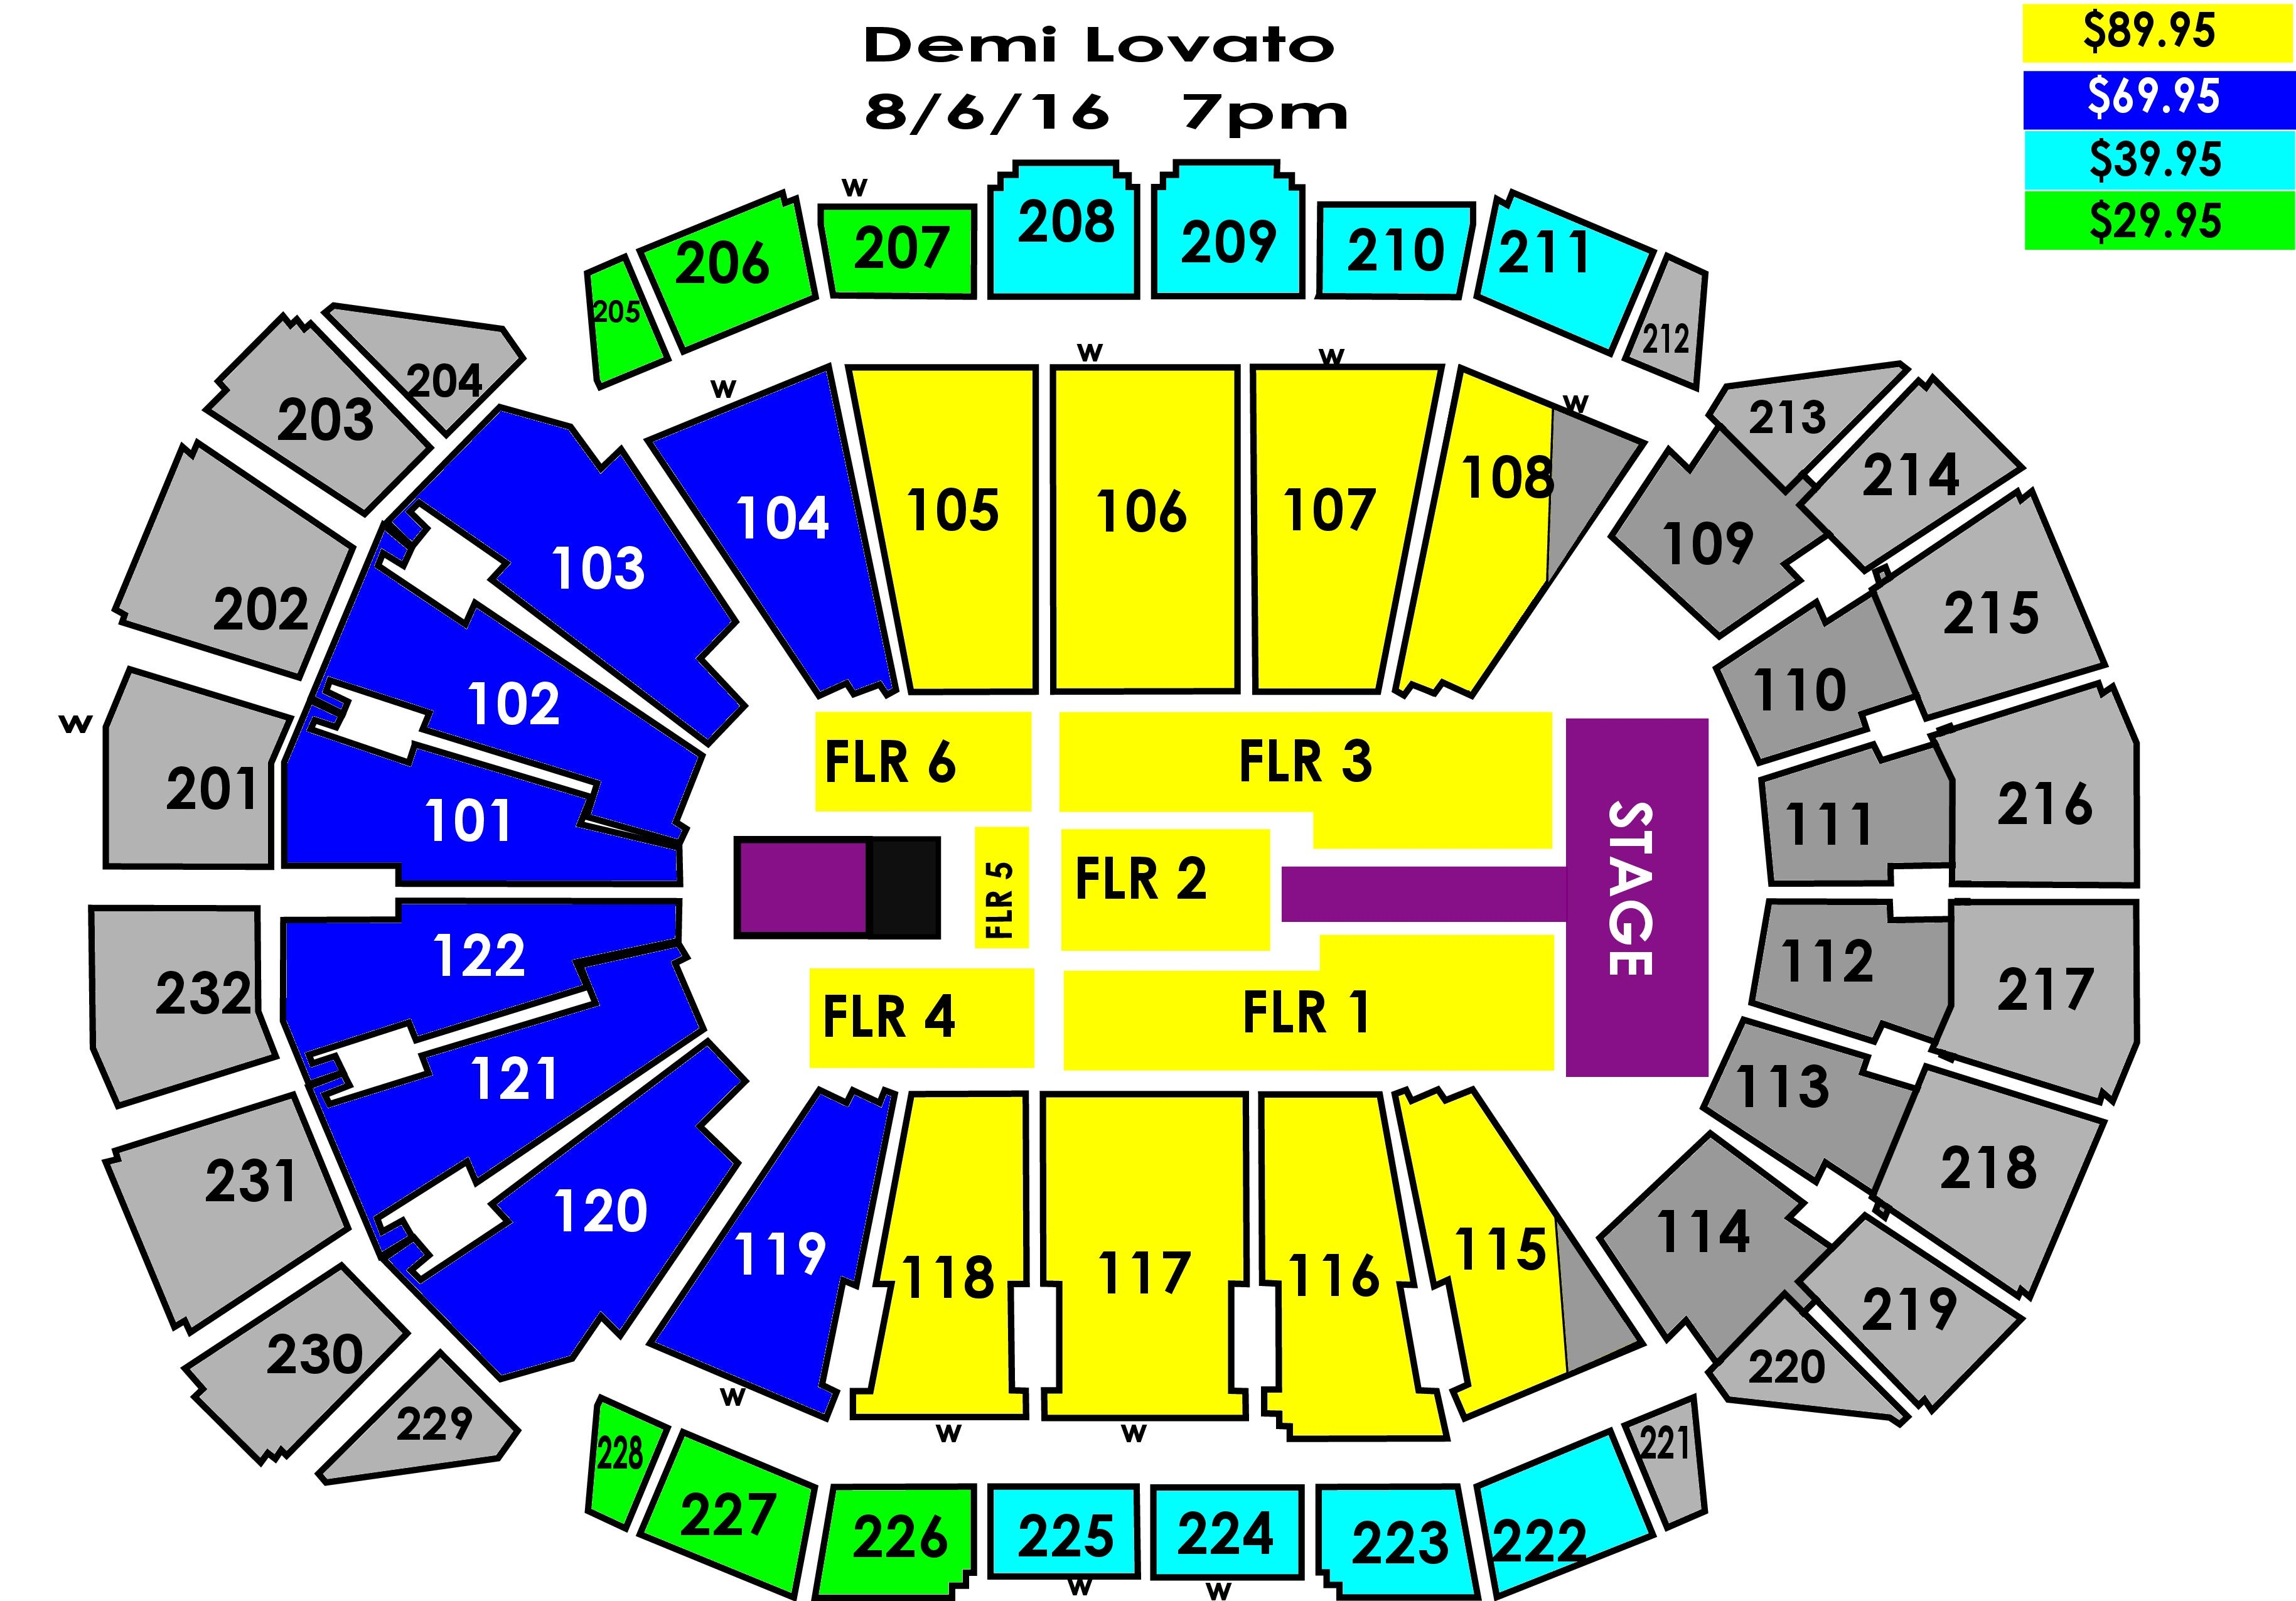 Demi lovato nick jonas sprint center